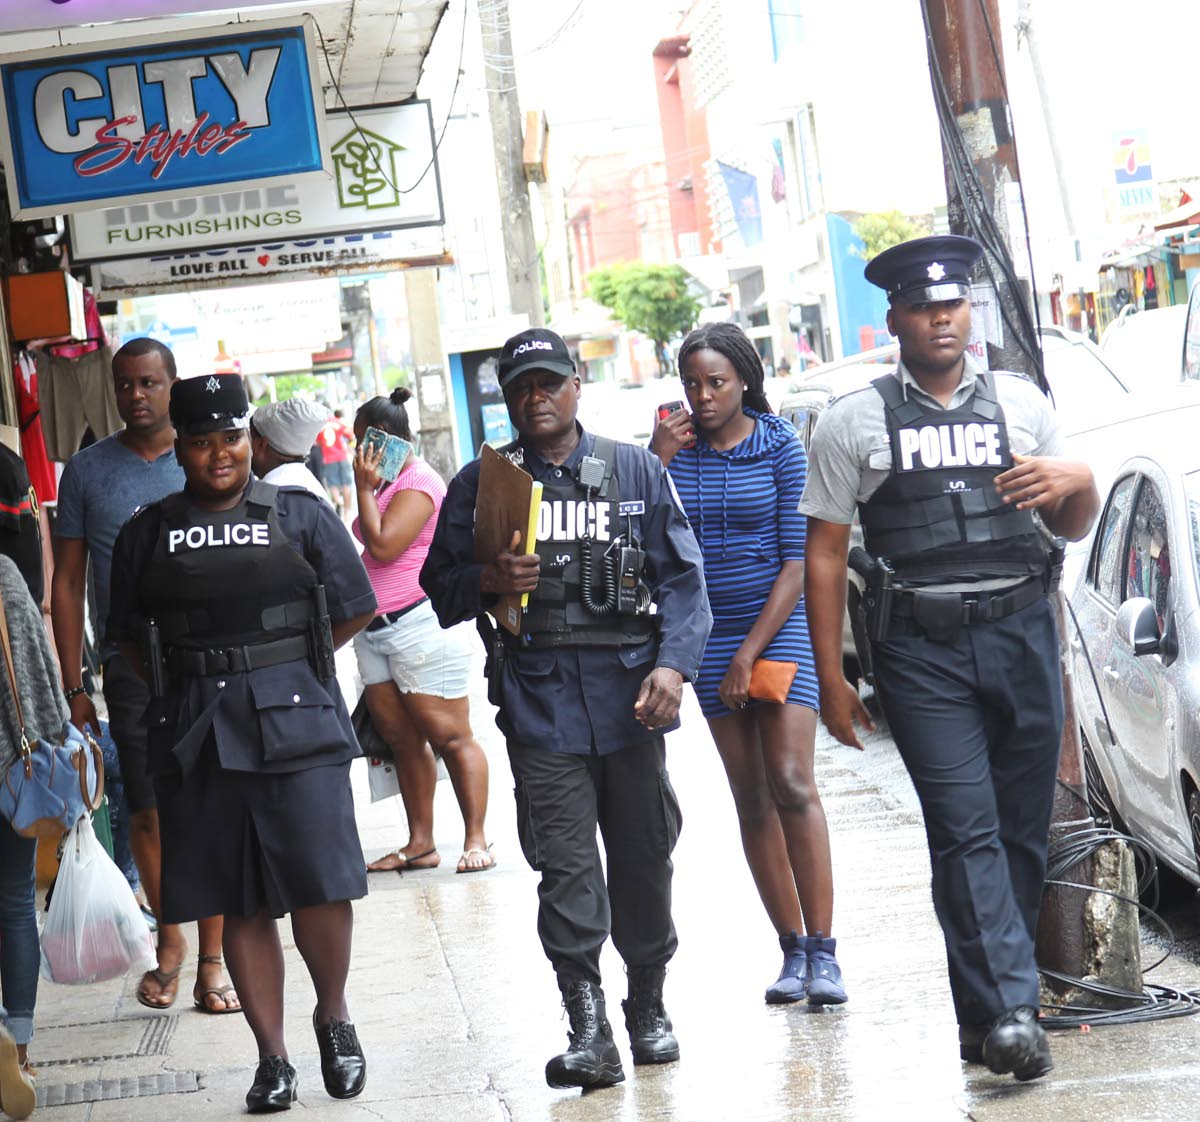 File photo: Police patrol the streets of Port of Spain during the Christmas shopping season. PHOTO BY RATTAN JADOO.